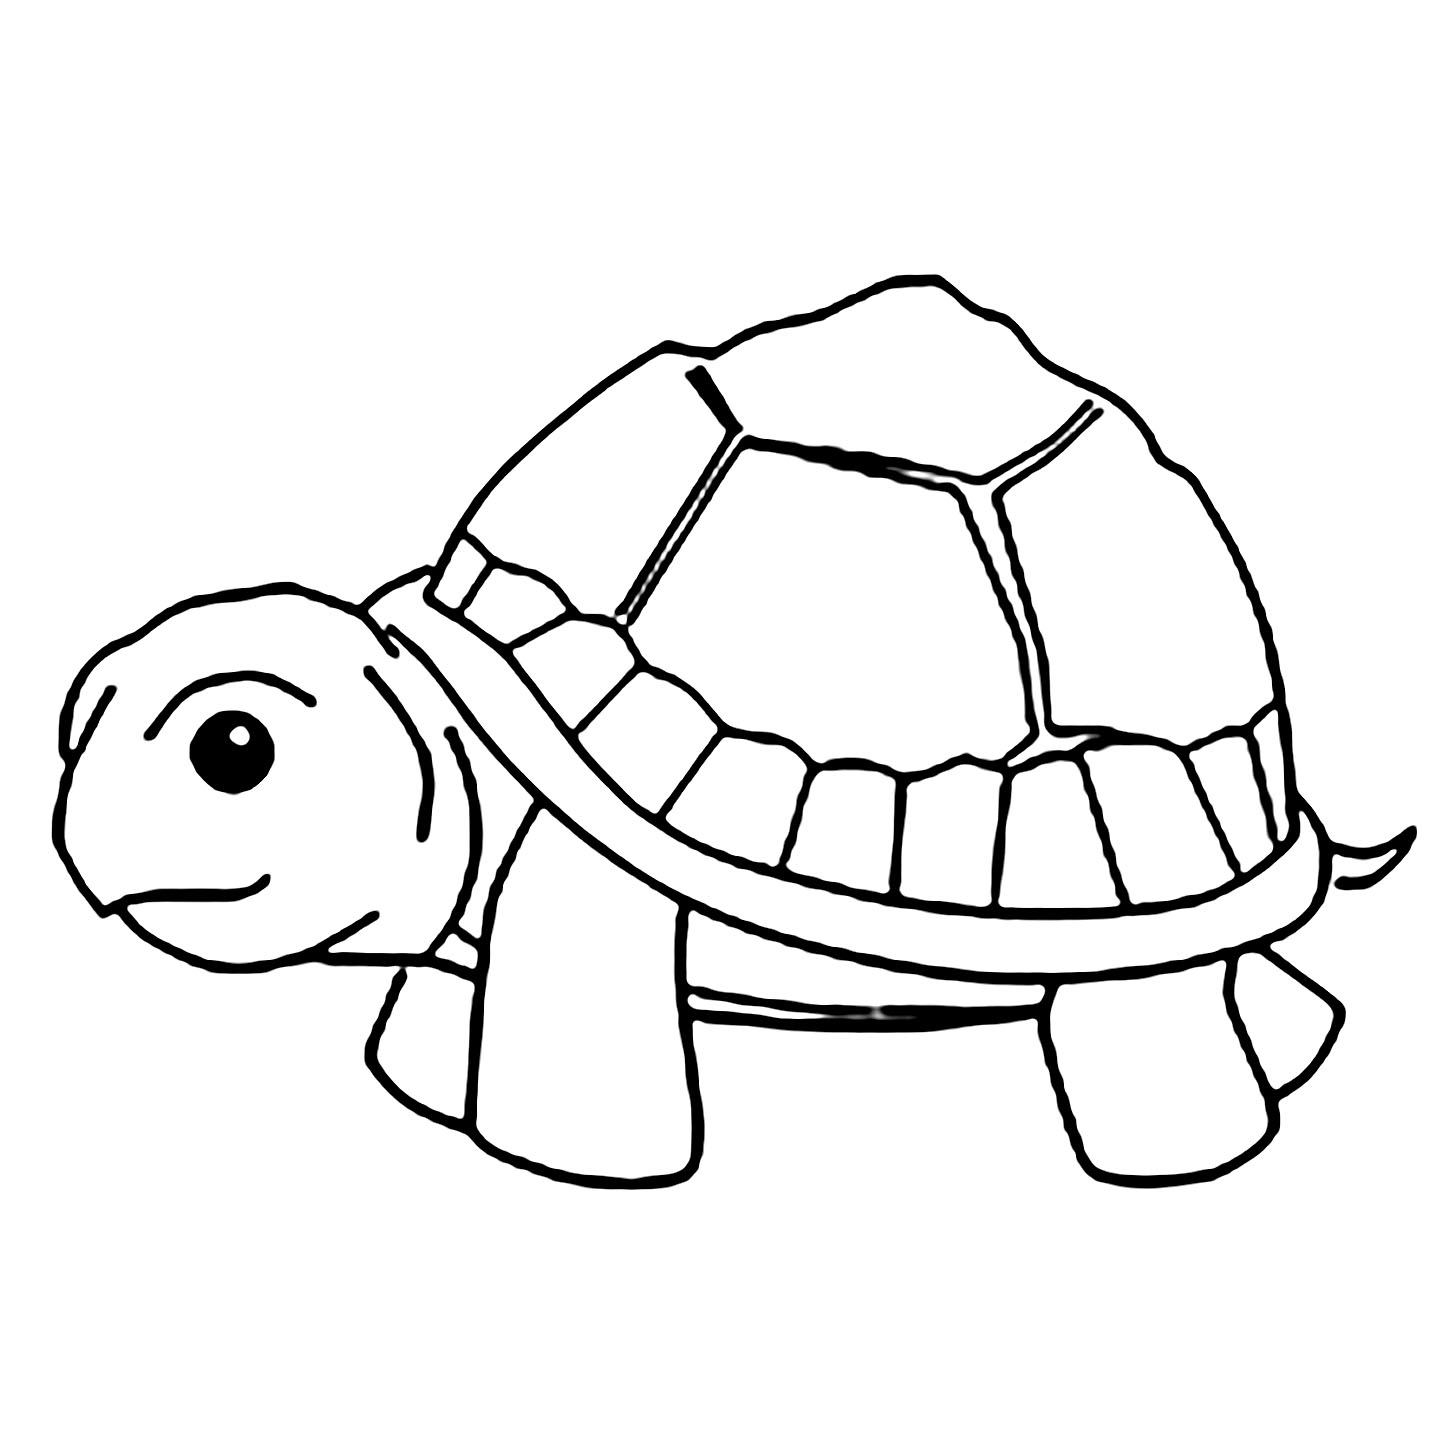 - Turtles To Download - Turtles Kids Coloring Pages